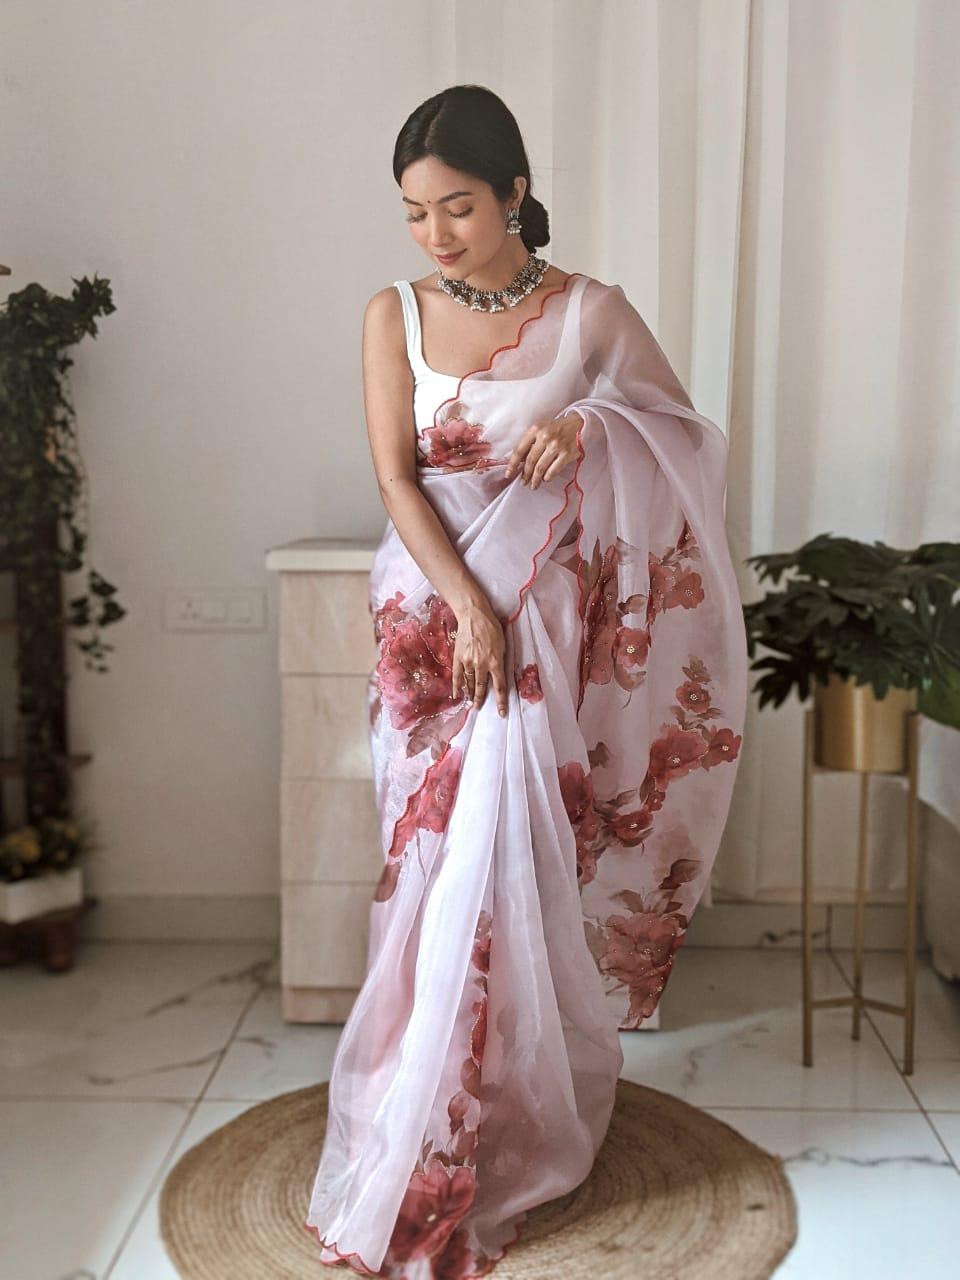 Peach Organza Saree With Digital Print Work Online Shopping